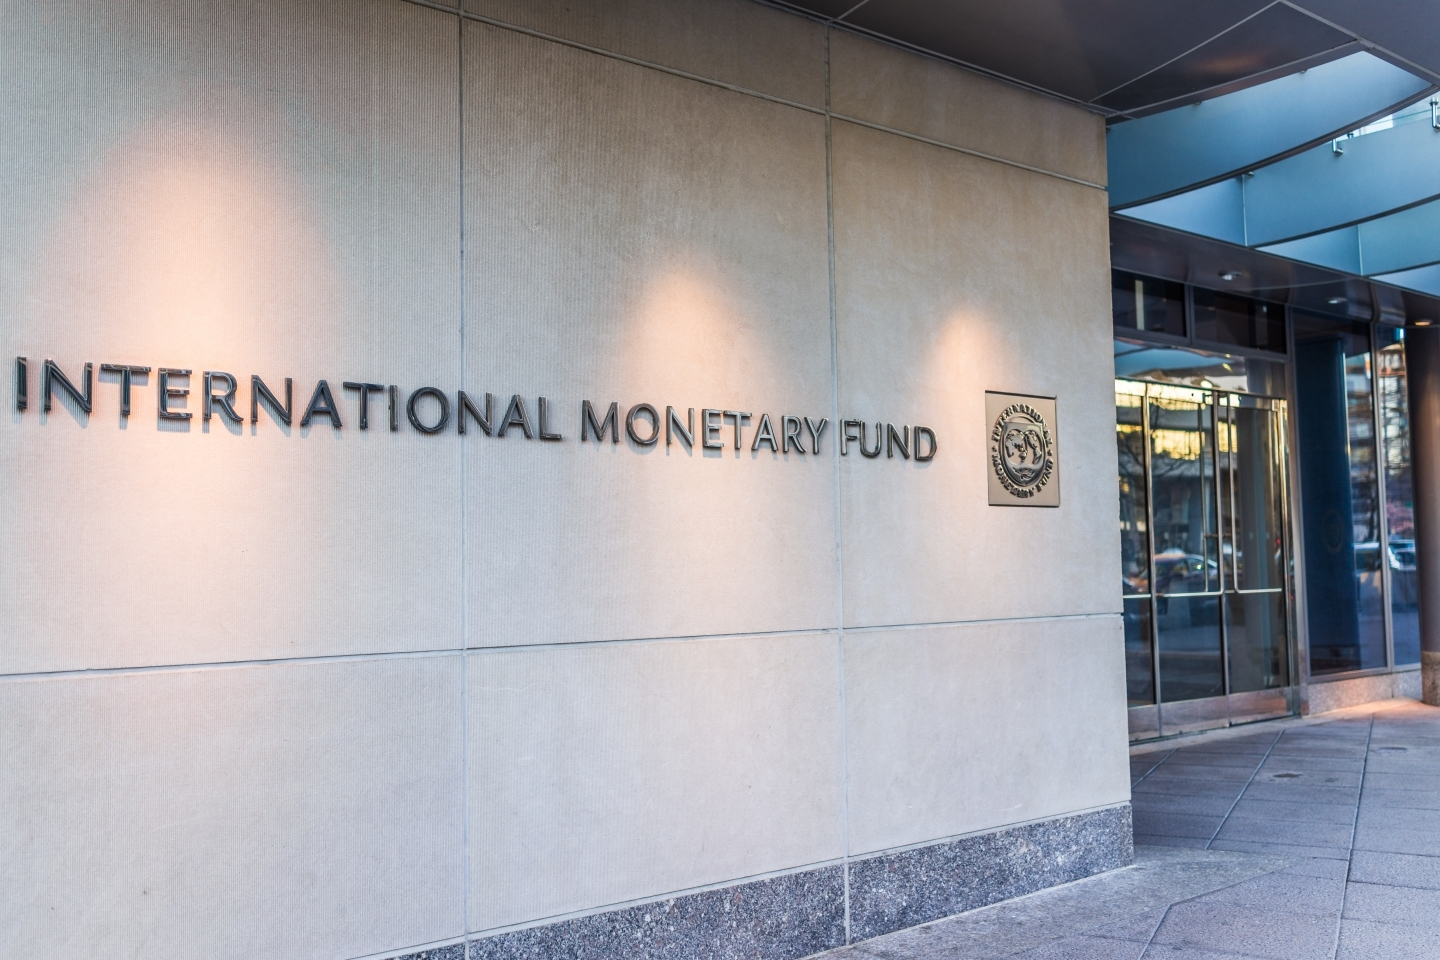 The IMF building in Washington DC (Shutterstock)